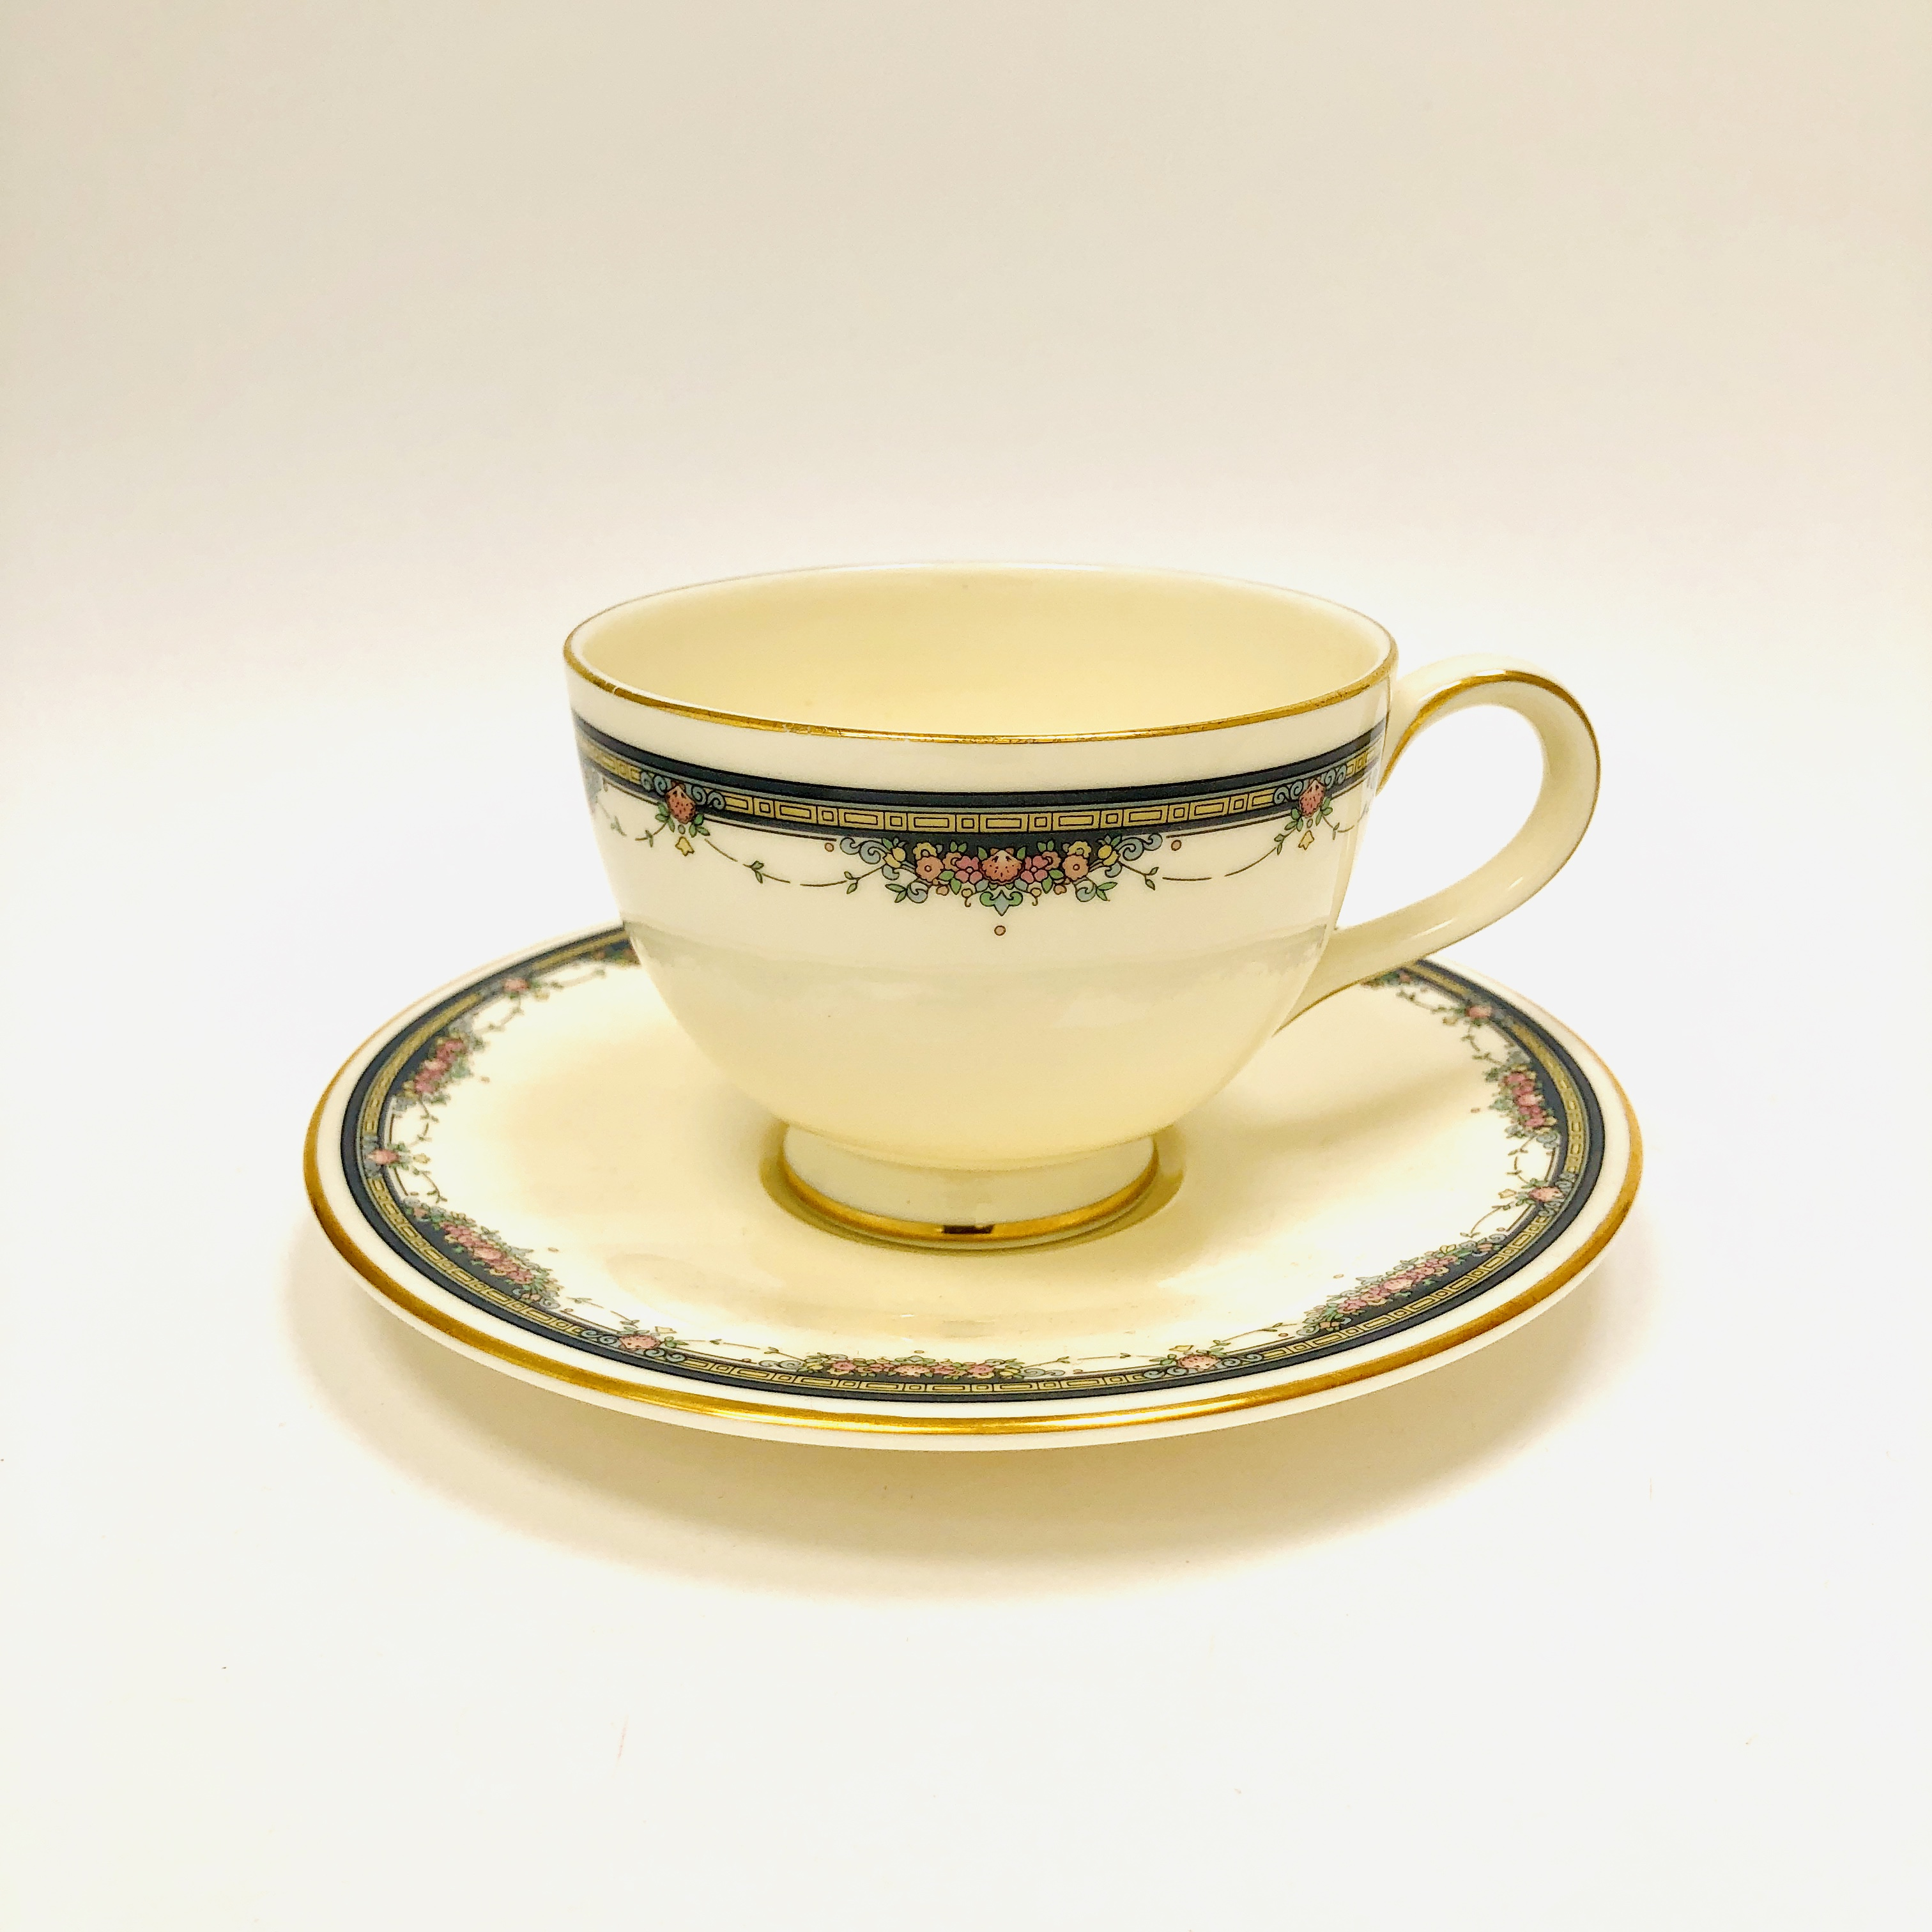 Royal Doulton Albany Fine Bone China Cup Saucer Cup And Saucer Vintage England Ibon Antiques